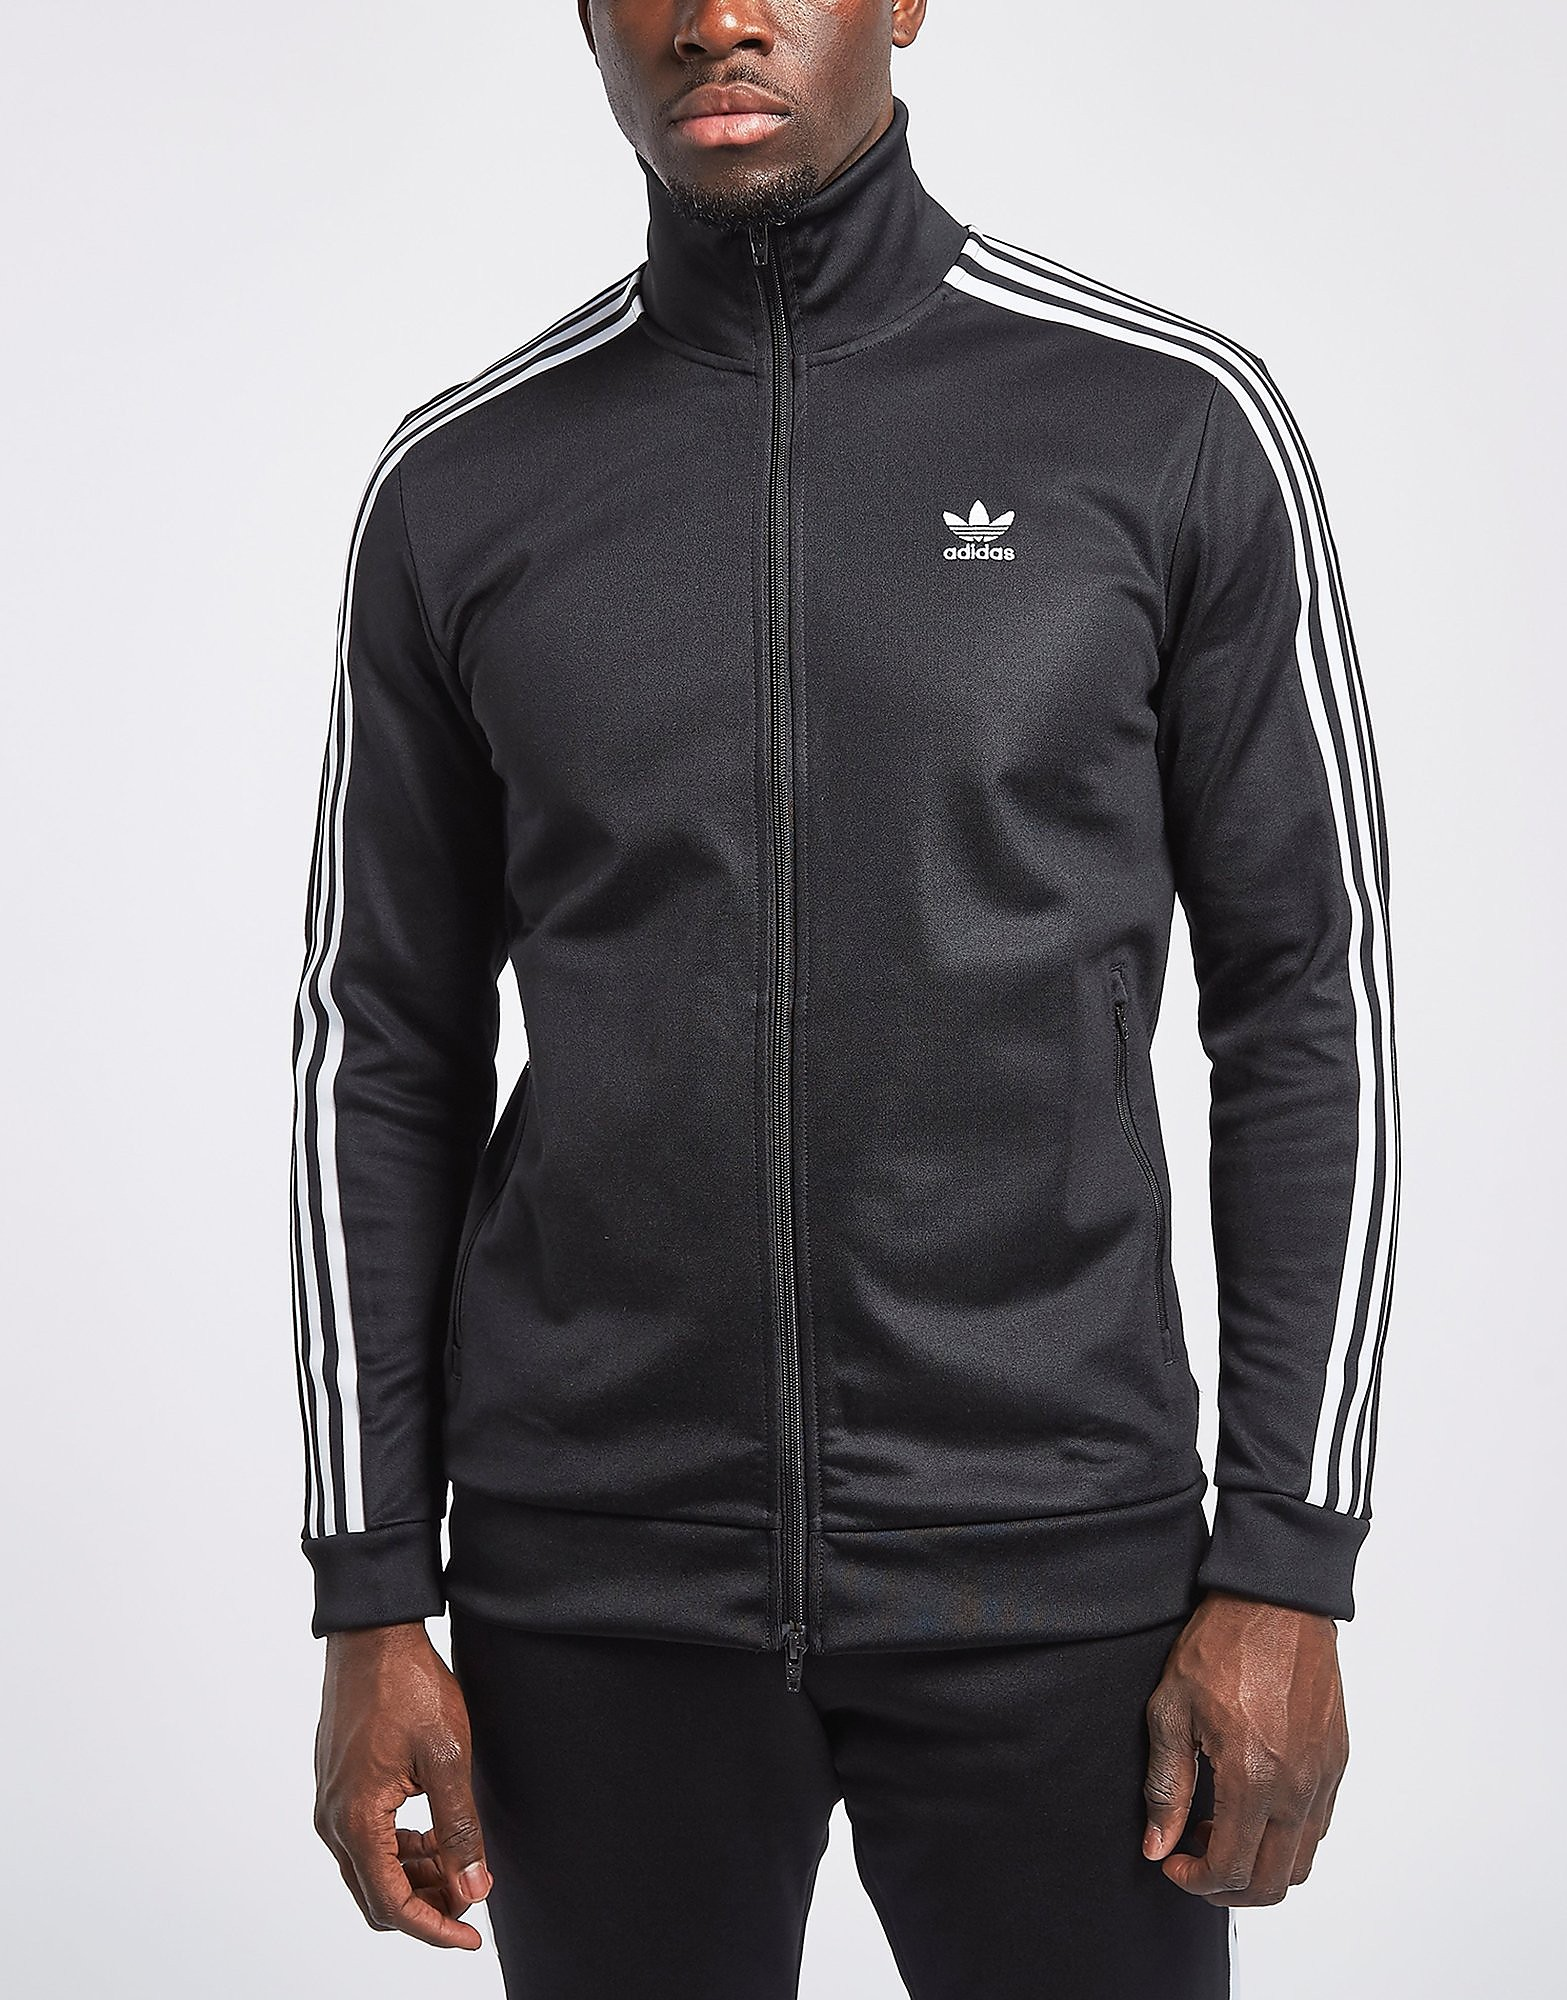 adidas Originals Beckenbauer Full Zip Track Top